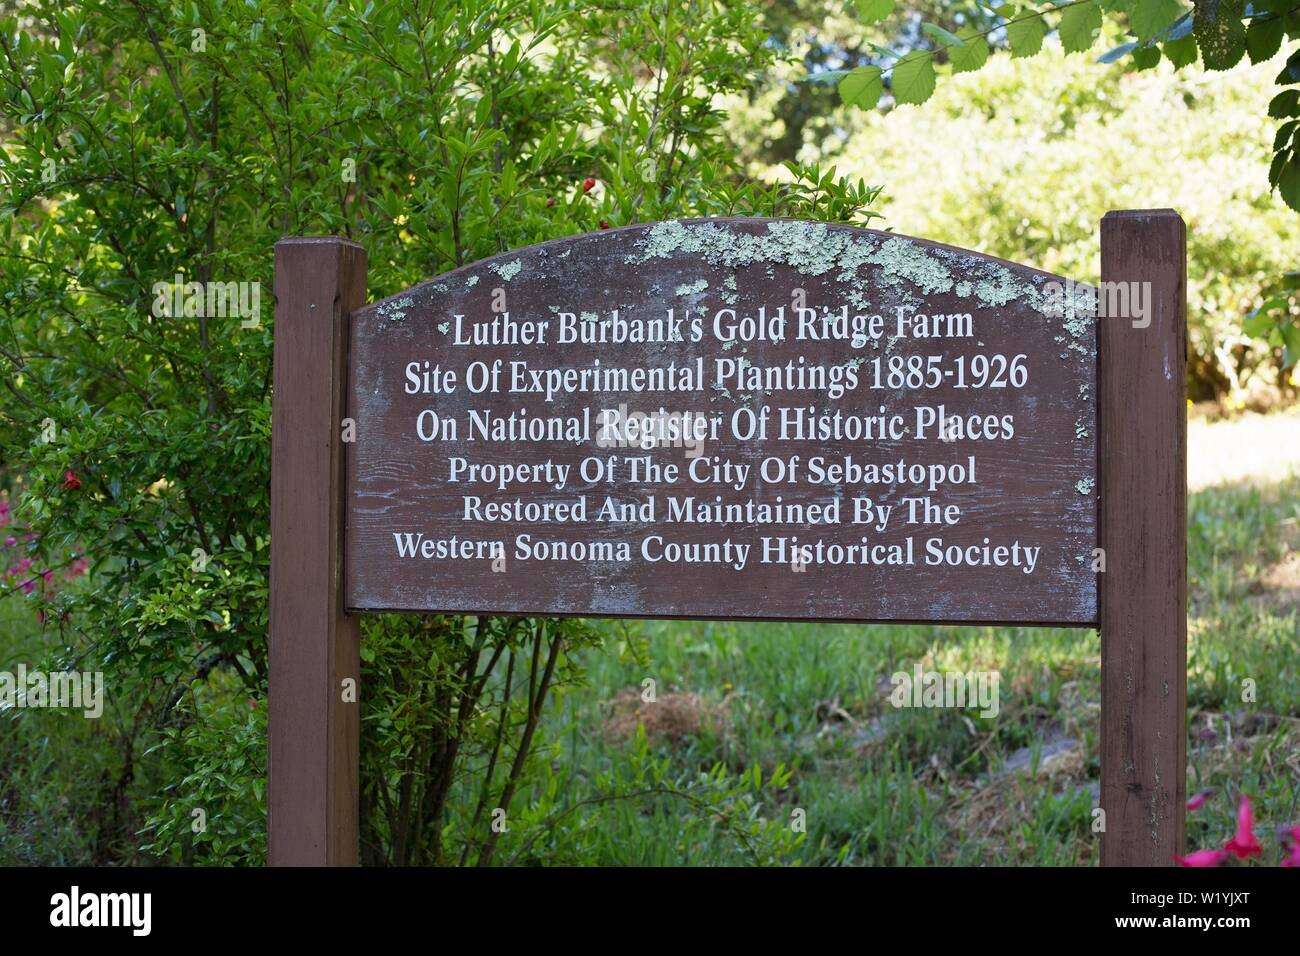 A sign at the entrance to Luther Burbank's Experiment Farm in Sebastopol, CA, USA. - Stock Image